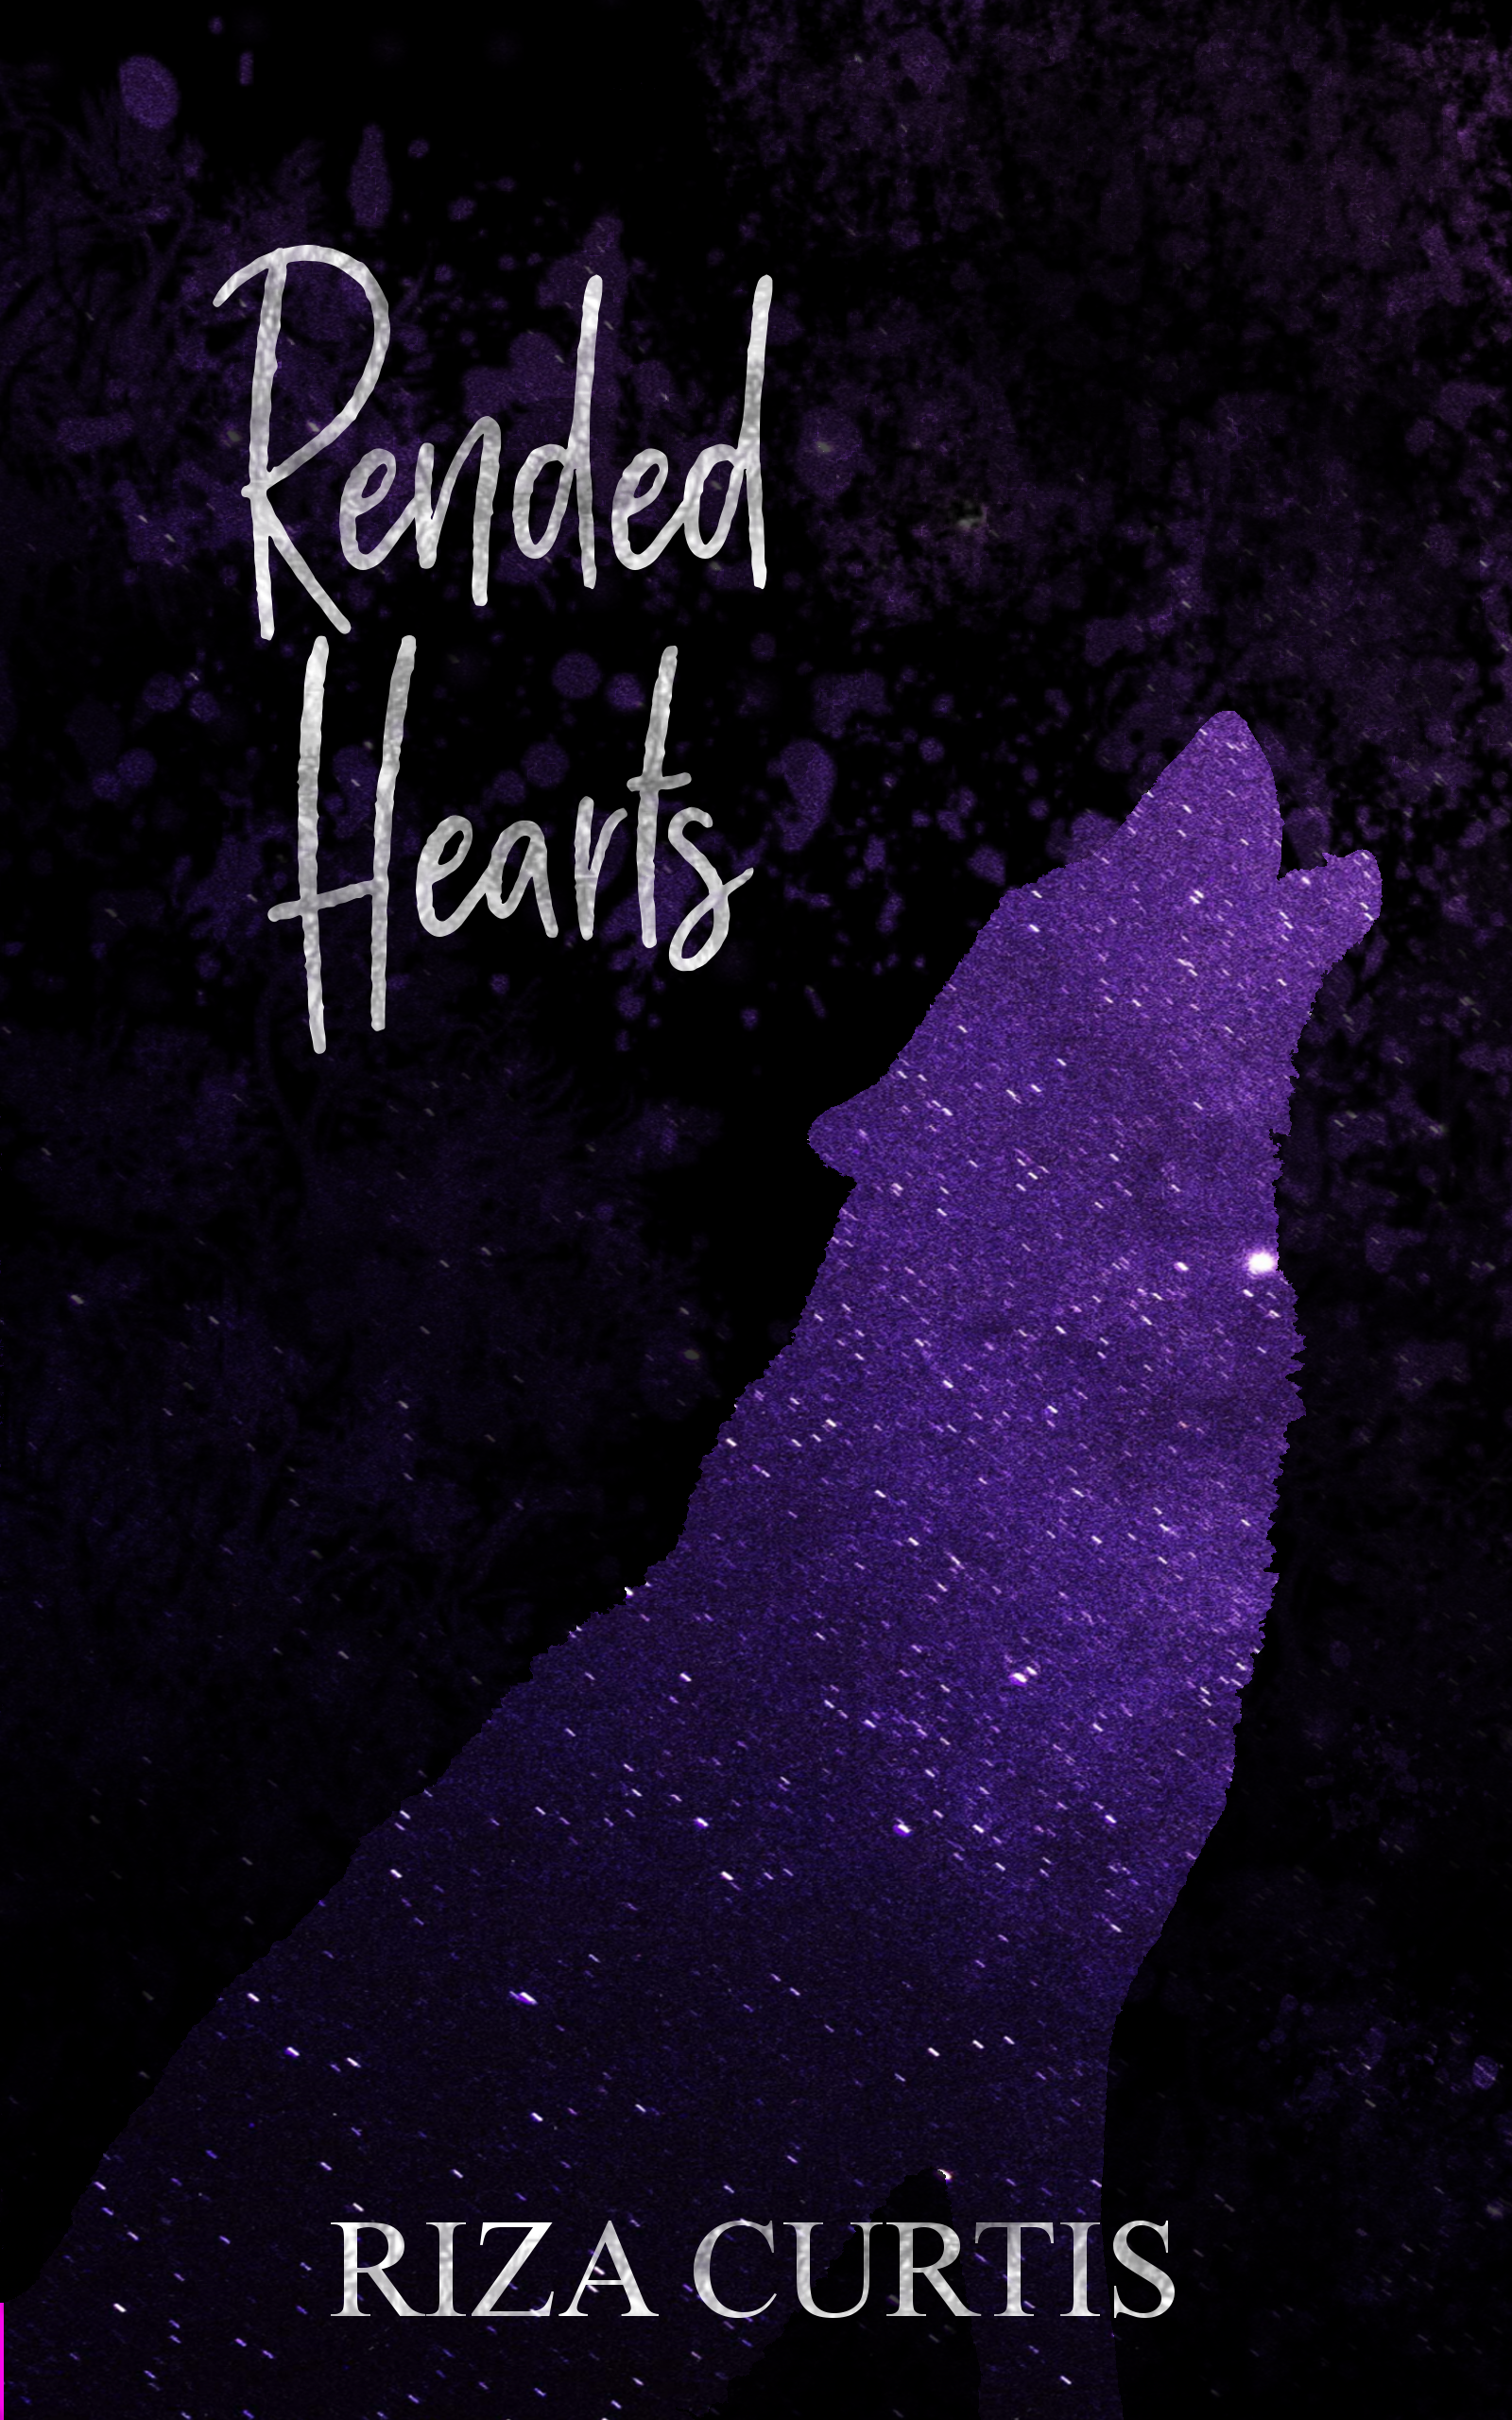 Rended Hearts Riza Curtis